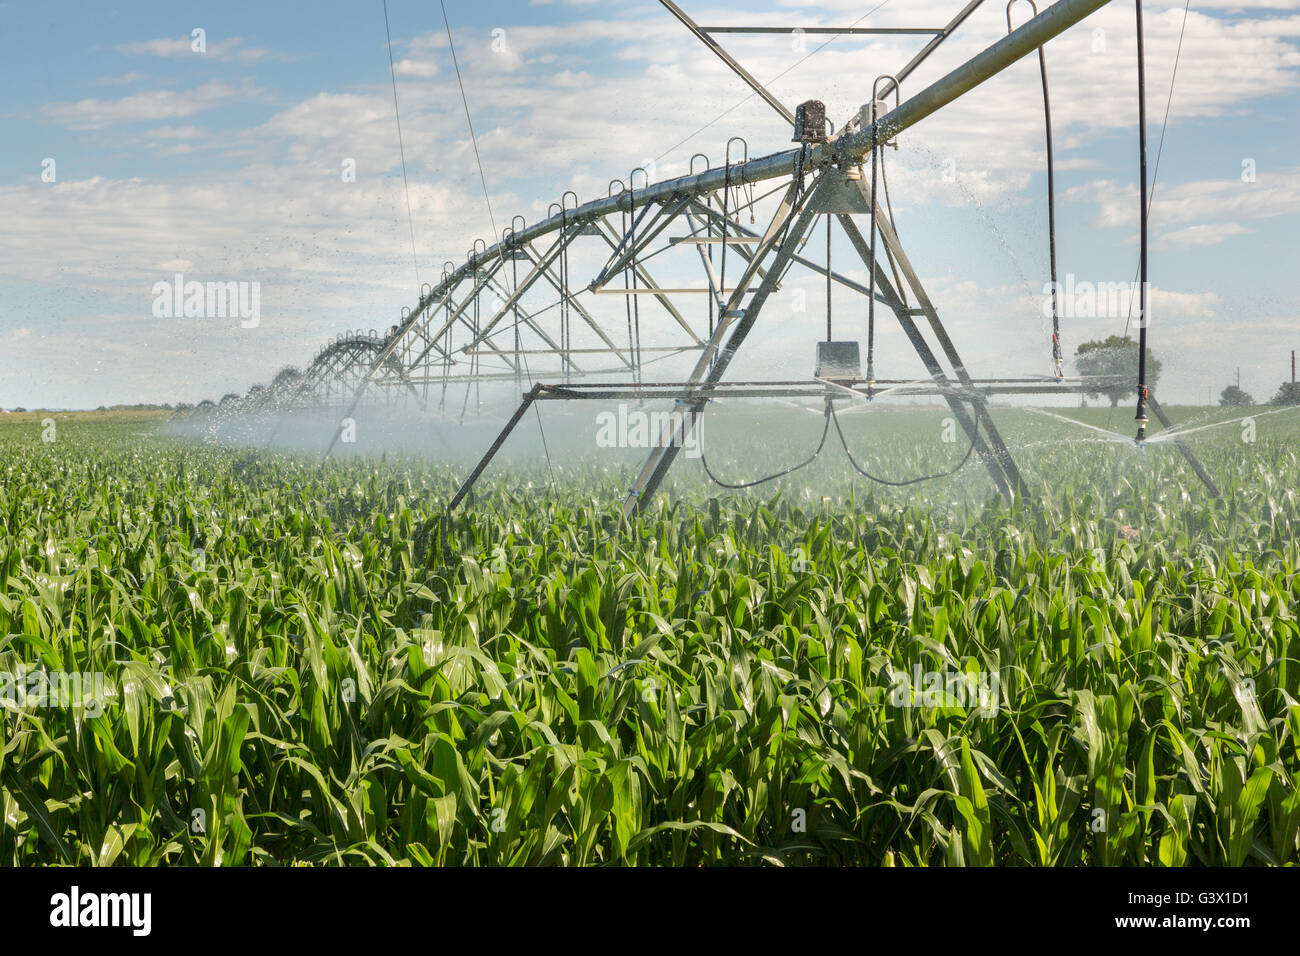 Large scale irrigation of a corn field July 25, 2015 outside Fort Collins, Colorado. Stock Photo